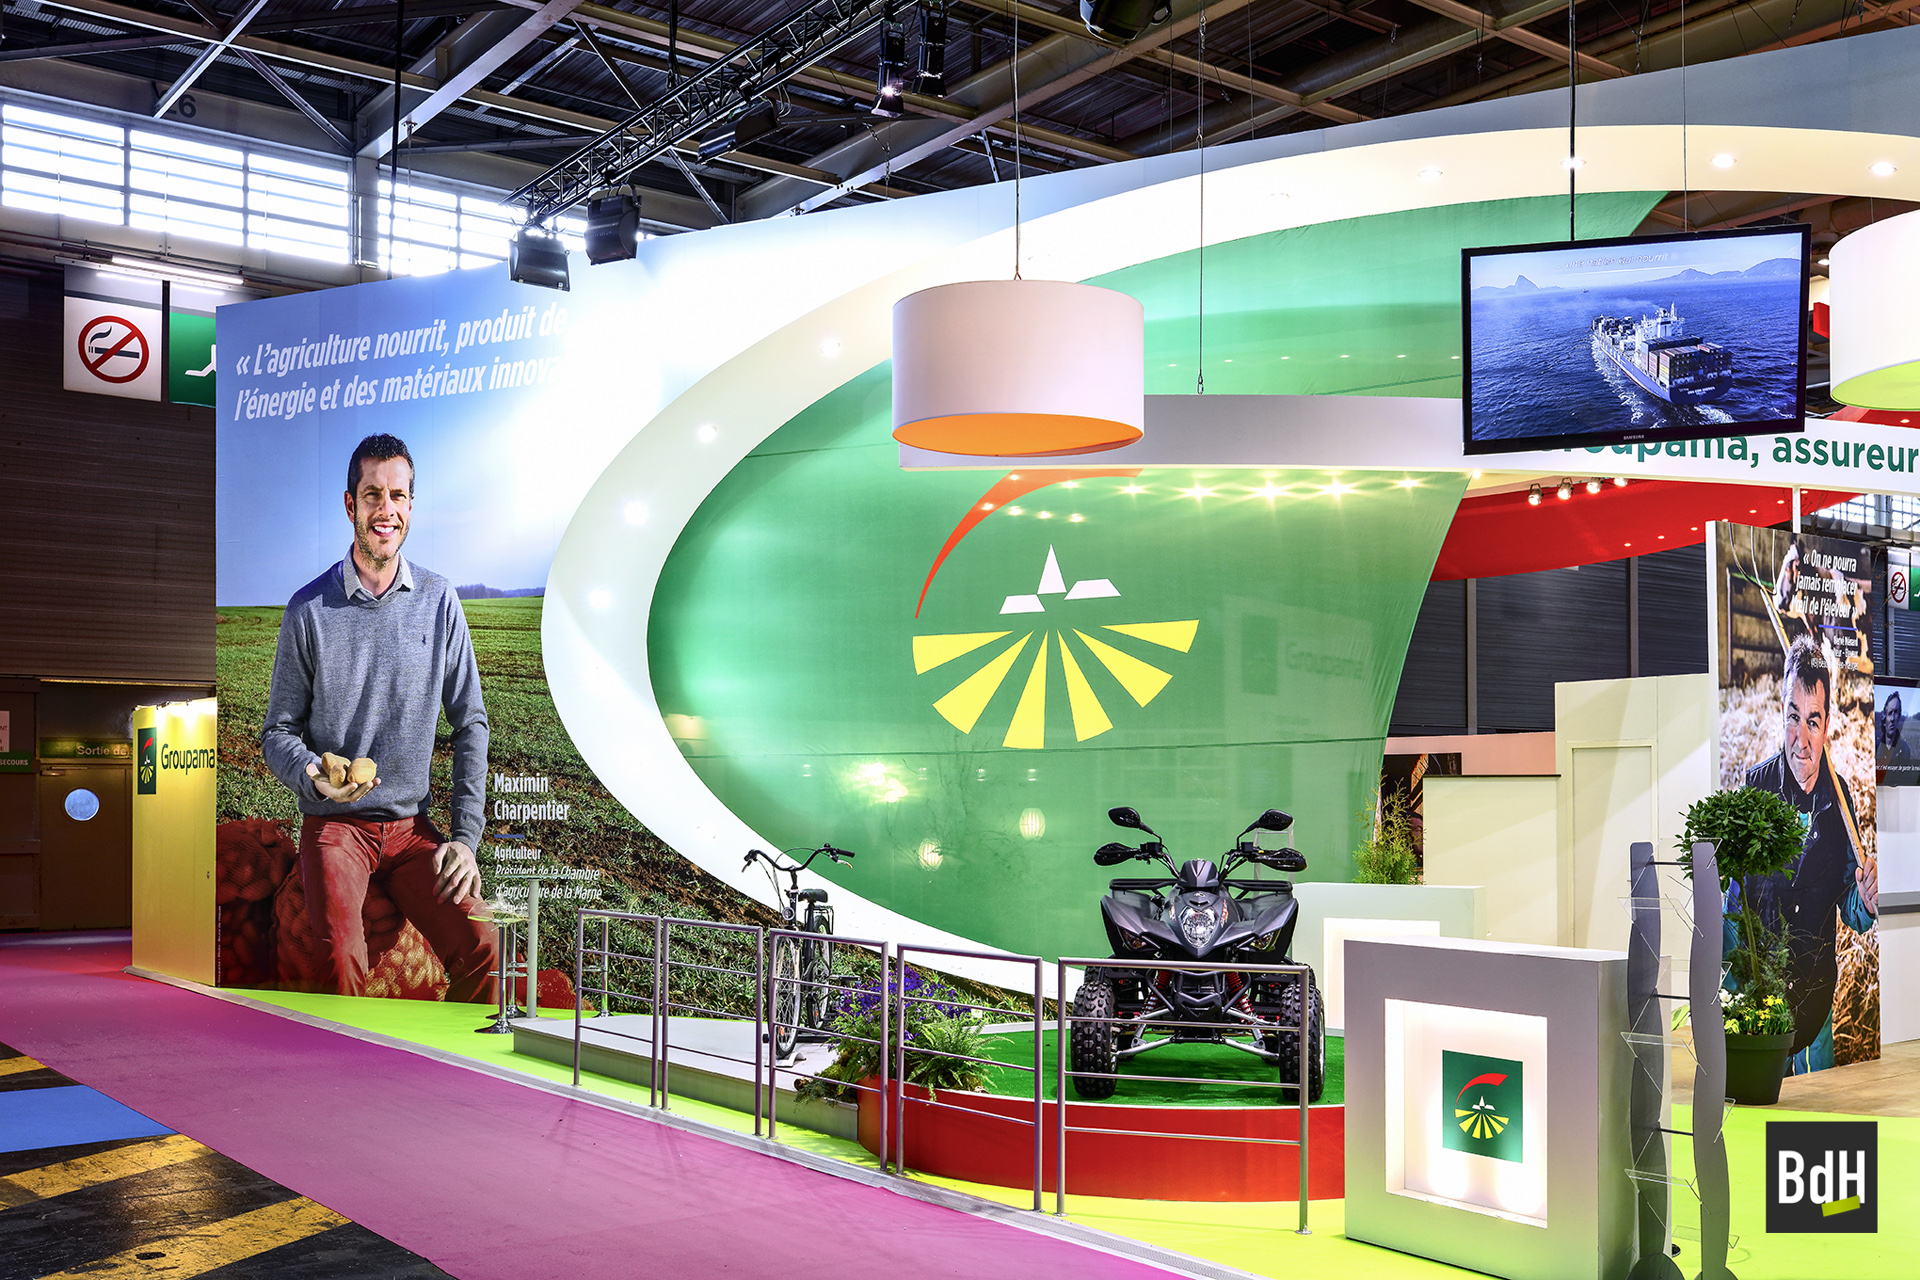 Exposition Bruno de HOGUES en commande pour Groupama au Salon International de l'Agriculture (SIA) à Paris le 02_2017.